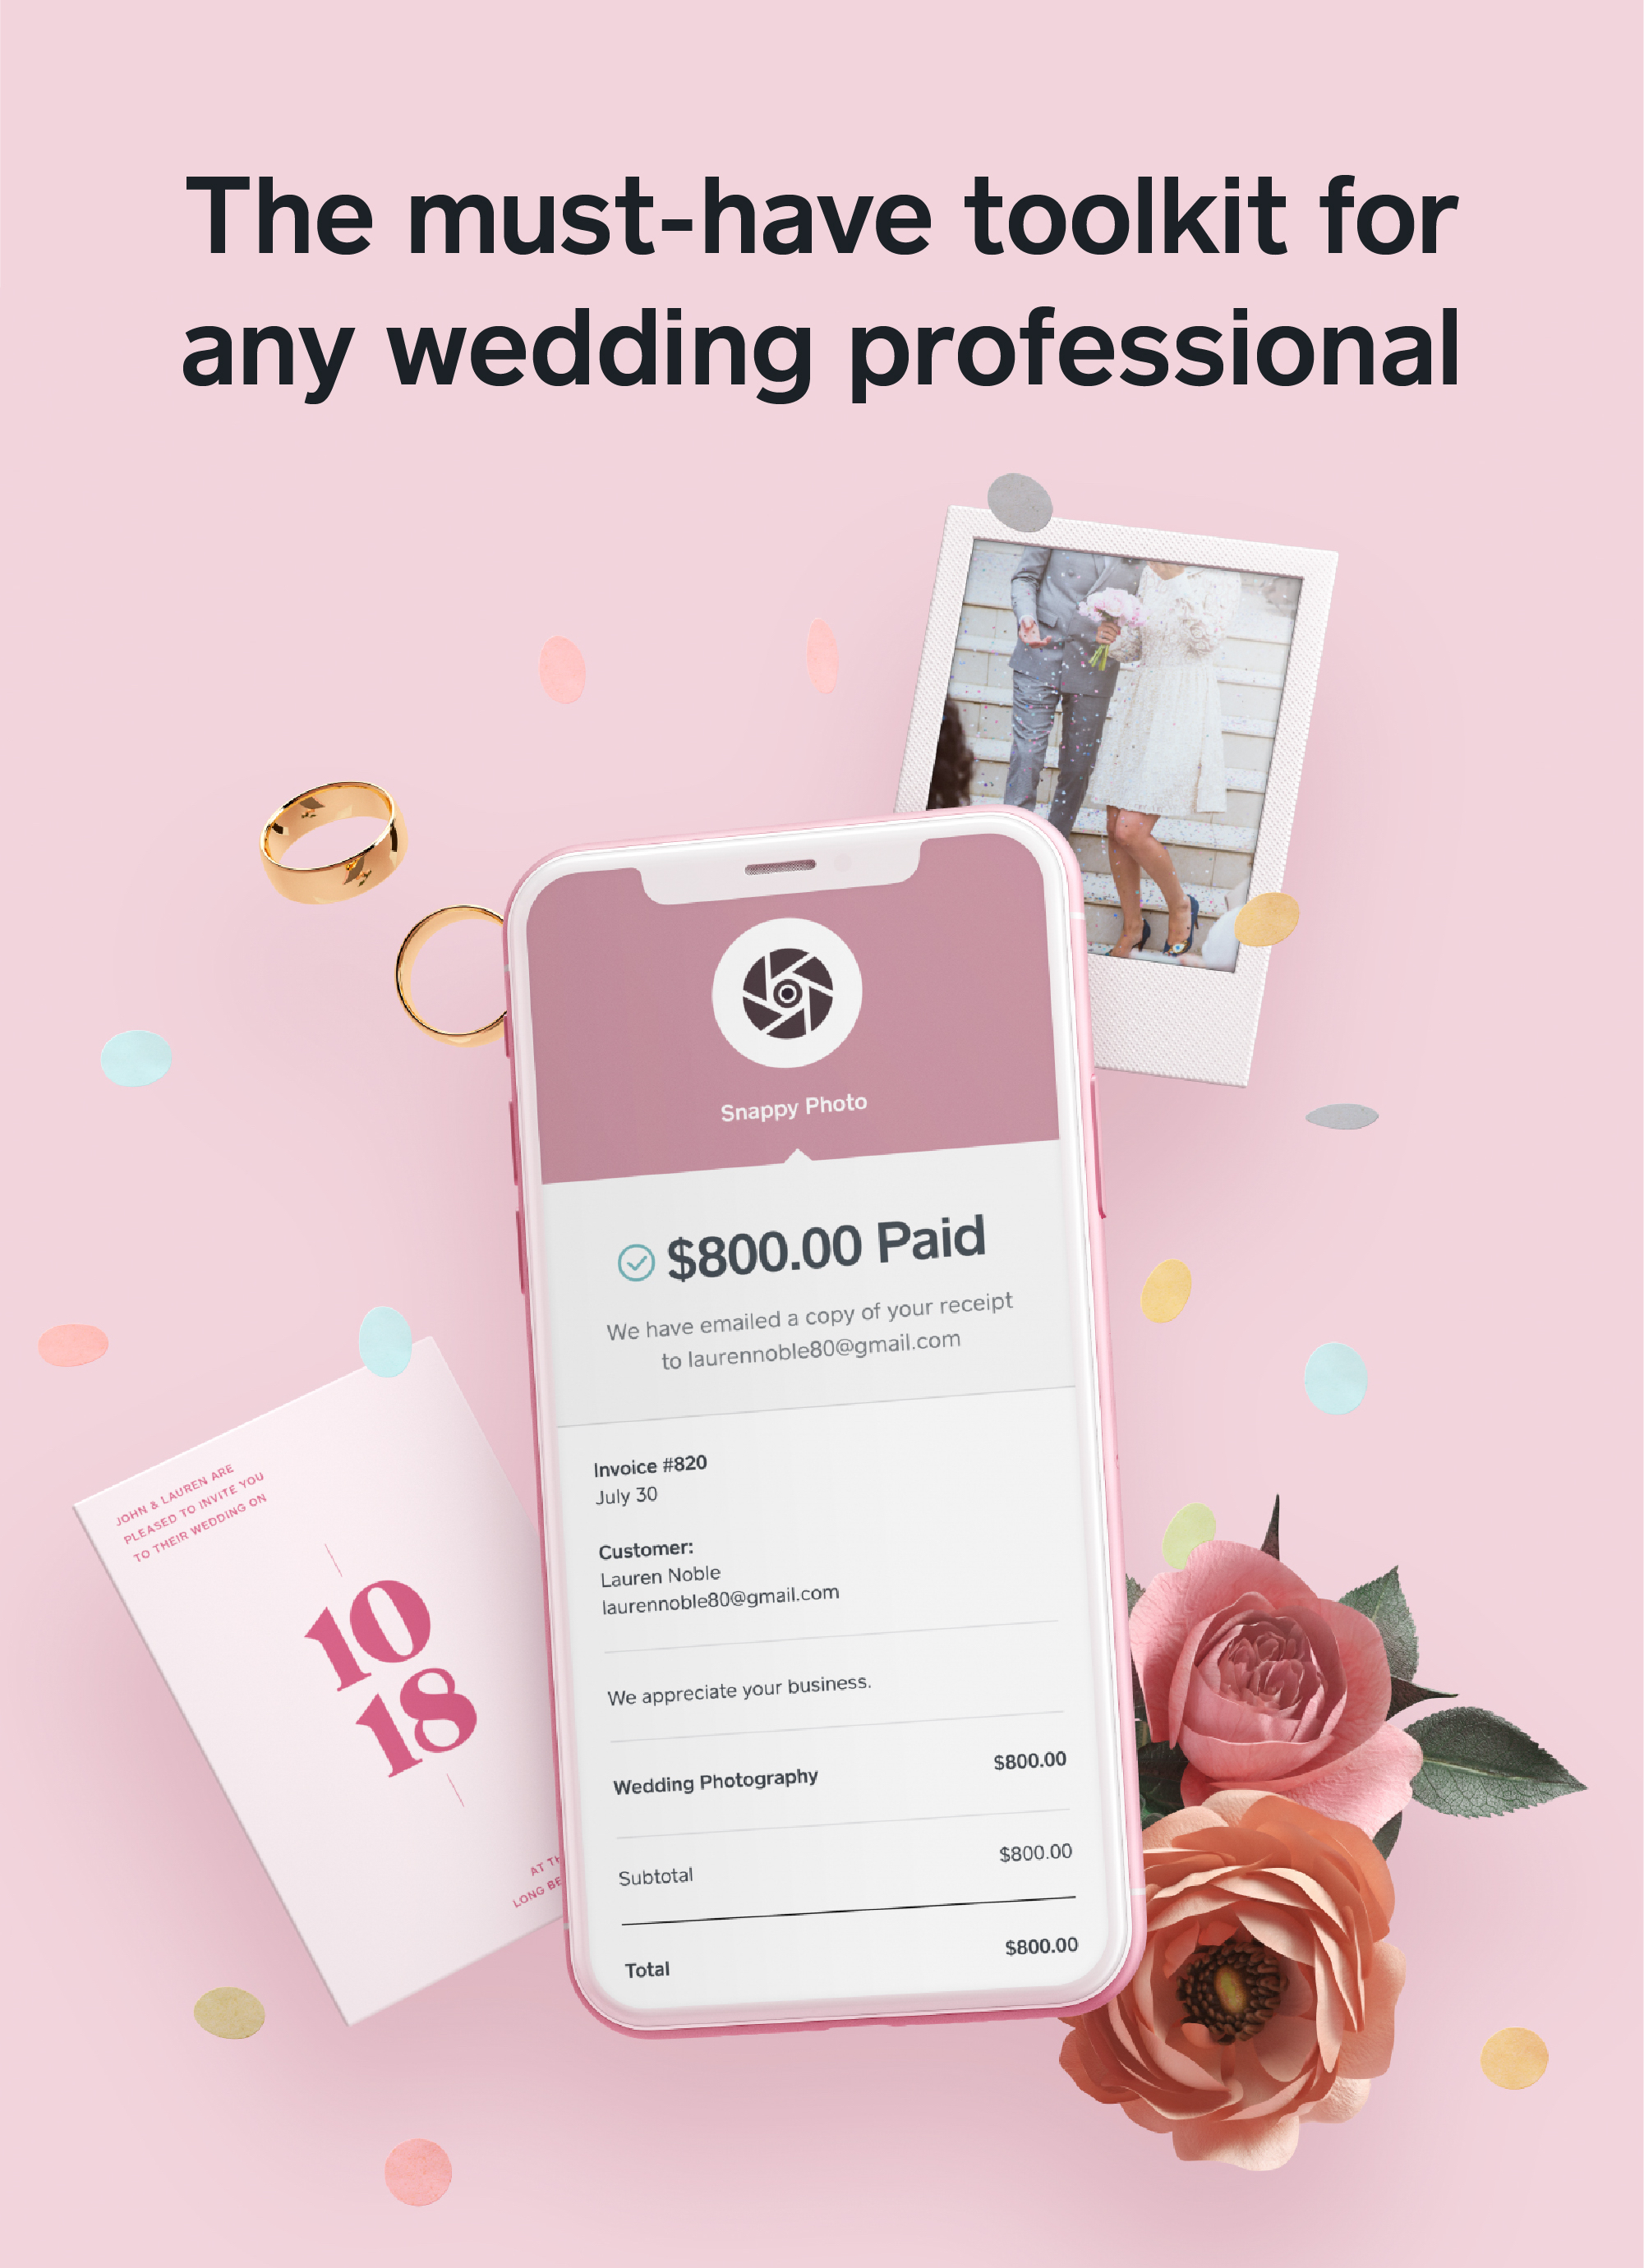 wedding-pro-pinterest-no-button